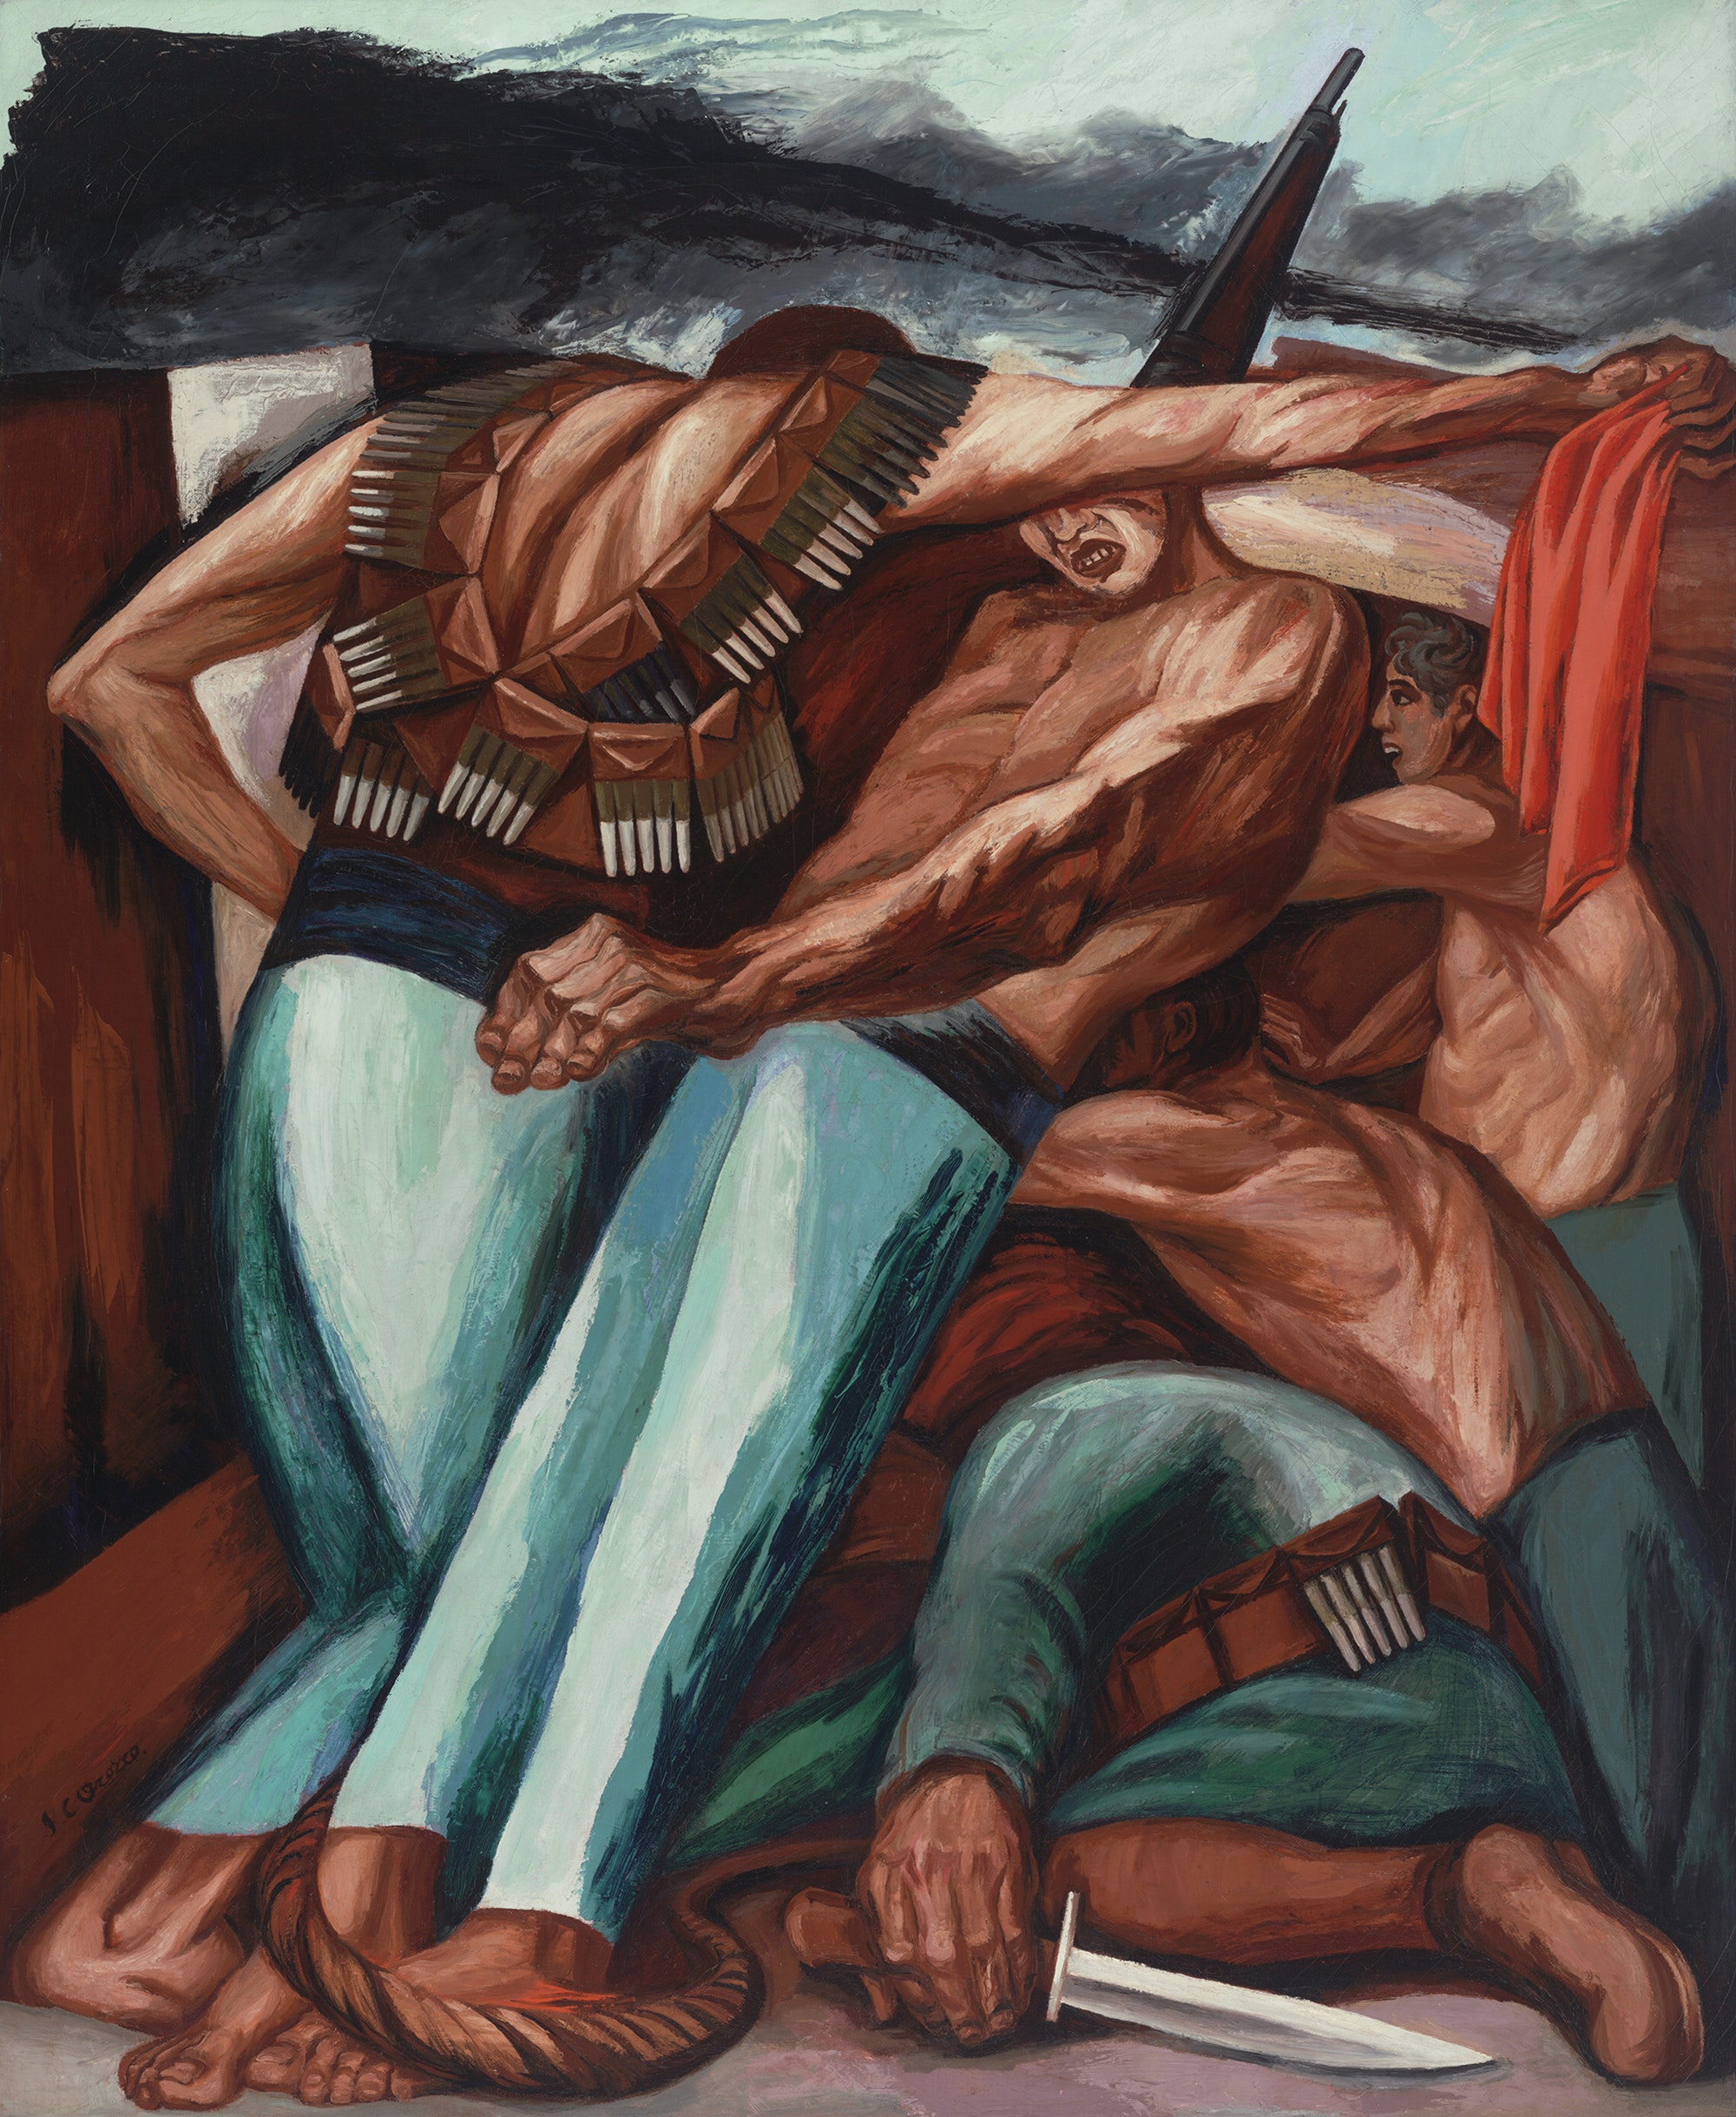 José Clemente Orozco, <em>Barricade (Barricada)</em>, 1931. Oil on canvas, 55 × 45 inches. Museum of Modern Art, New York; given anonymously. © 2019 Artists Rights Society (ARS), New York / SOMAAP, Mexico City. Image © The Museum of Modern Art / Licensed by SCALA / Art Resource, NY.